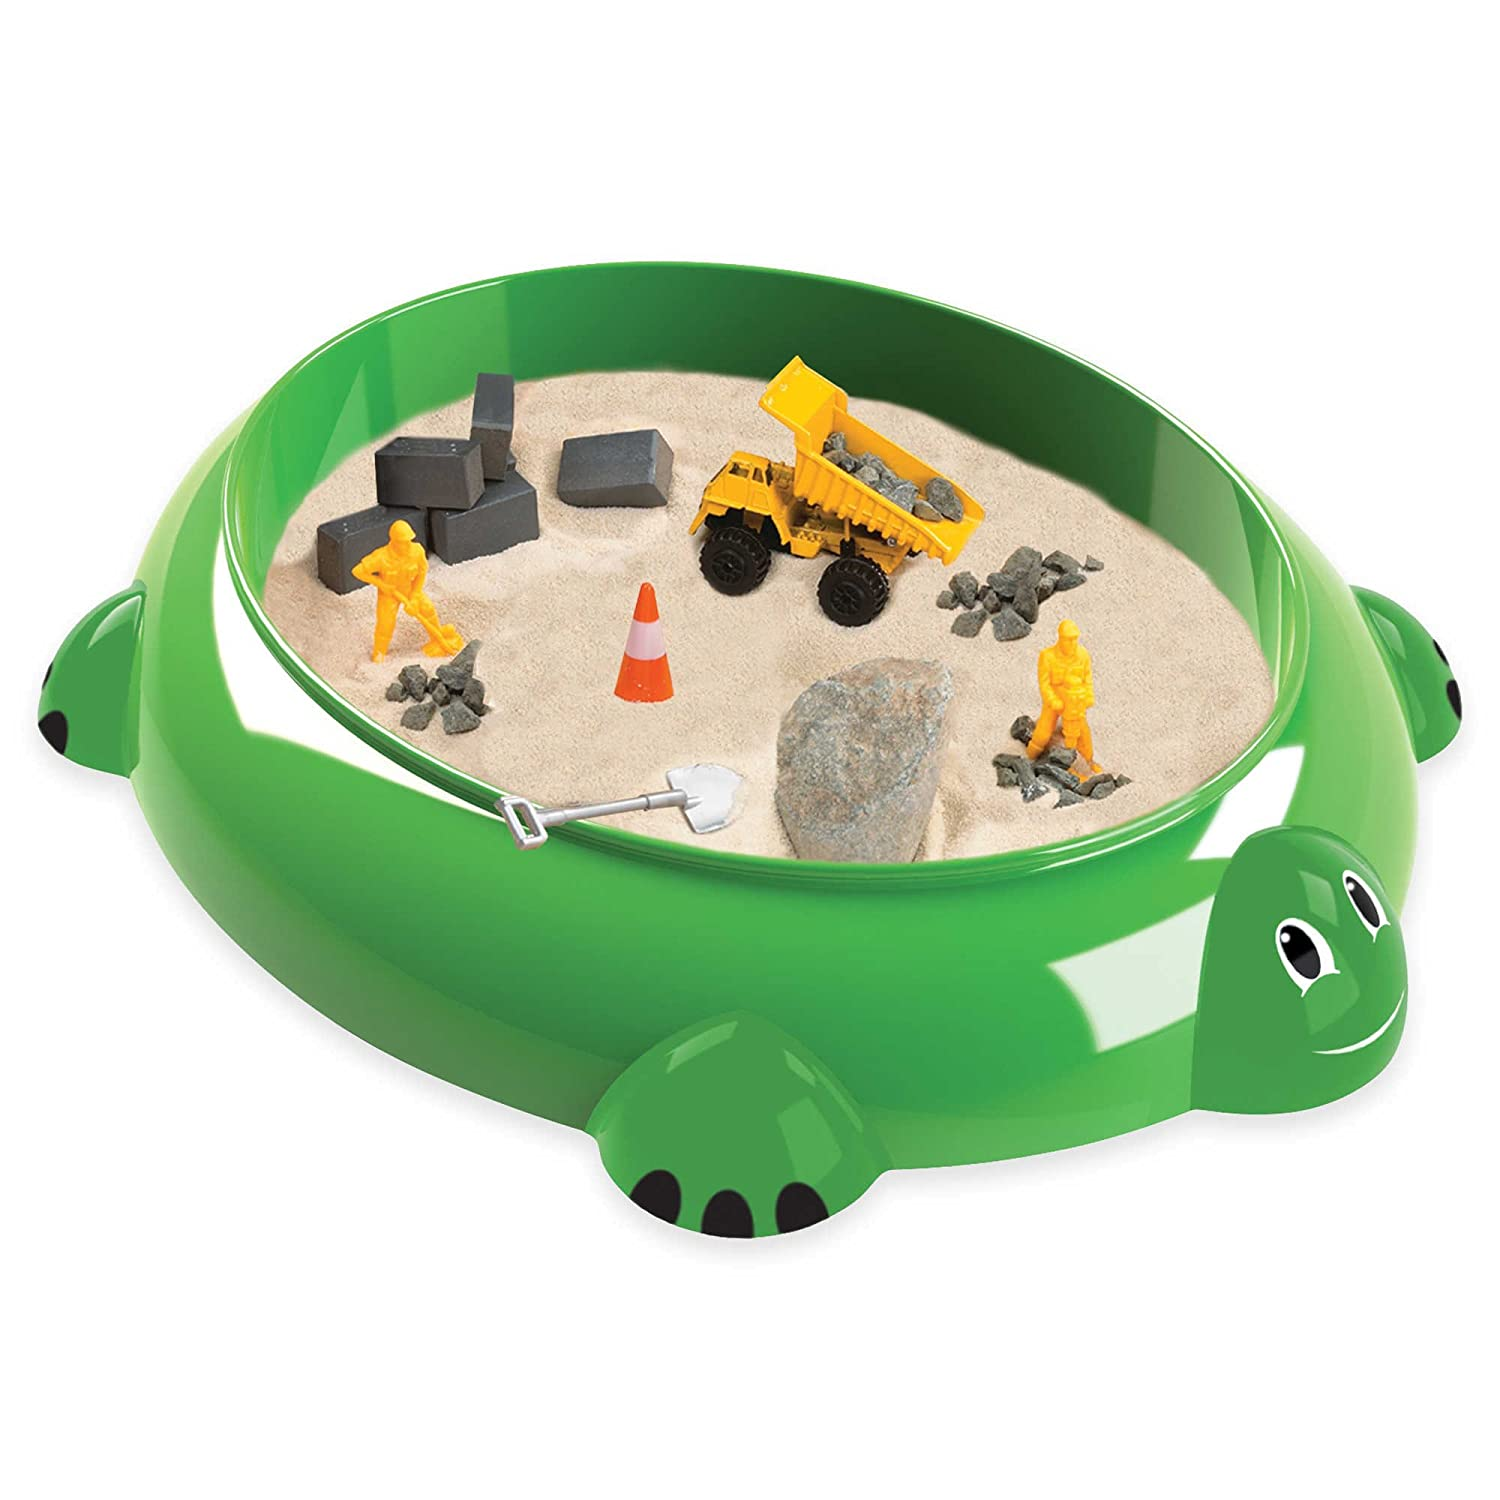 Sandbox Critters Sea Turtle Playセットwith Cover ( Toy to play with not for children to play in Sandbox )   B01N4JT4E0